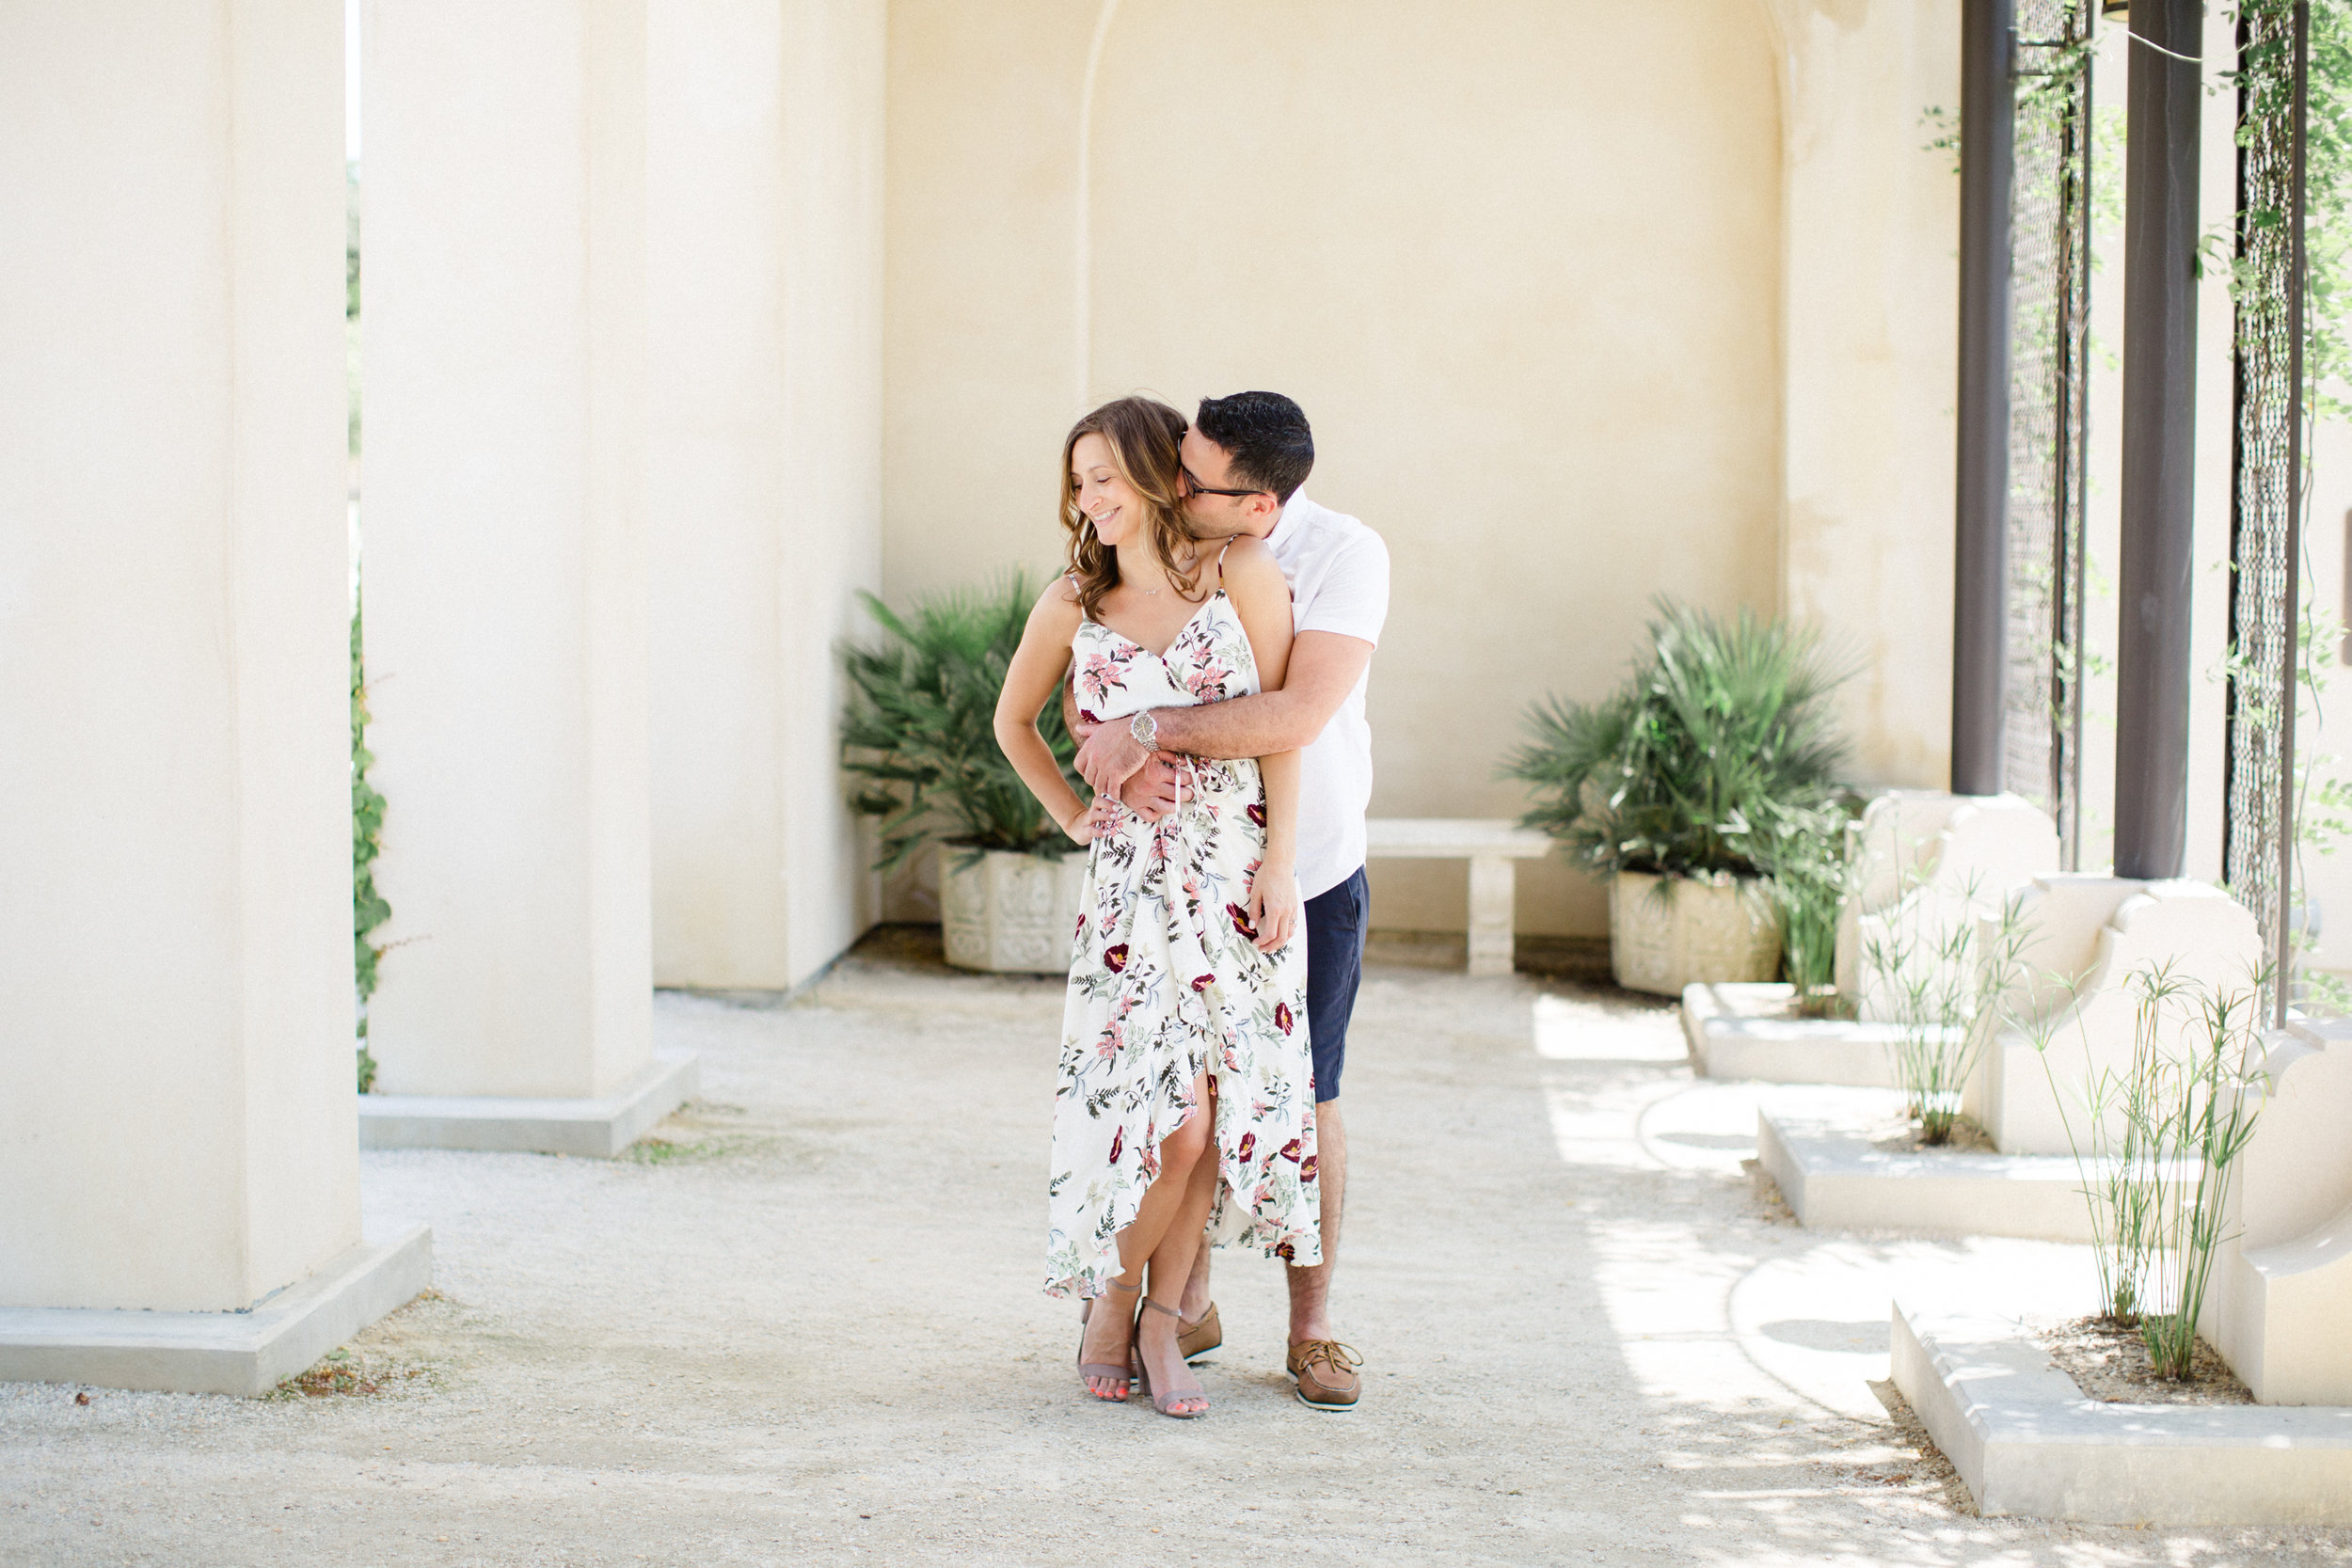 Longwood Gardens Engagement Session Photos_JDP-40.jpg